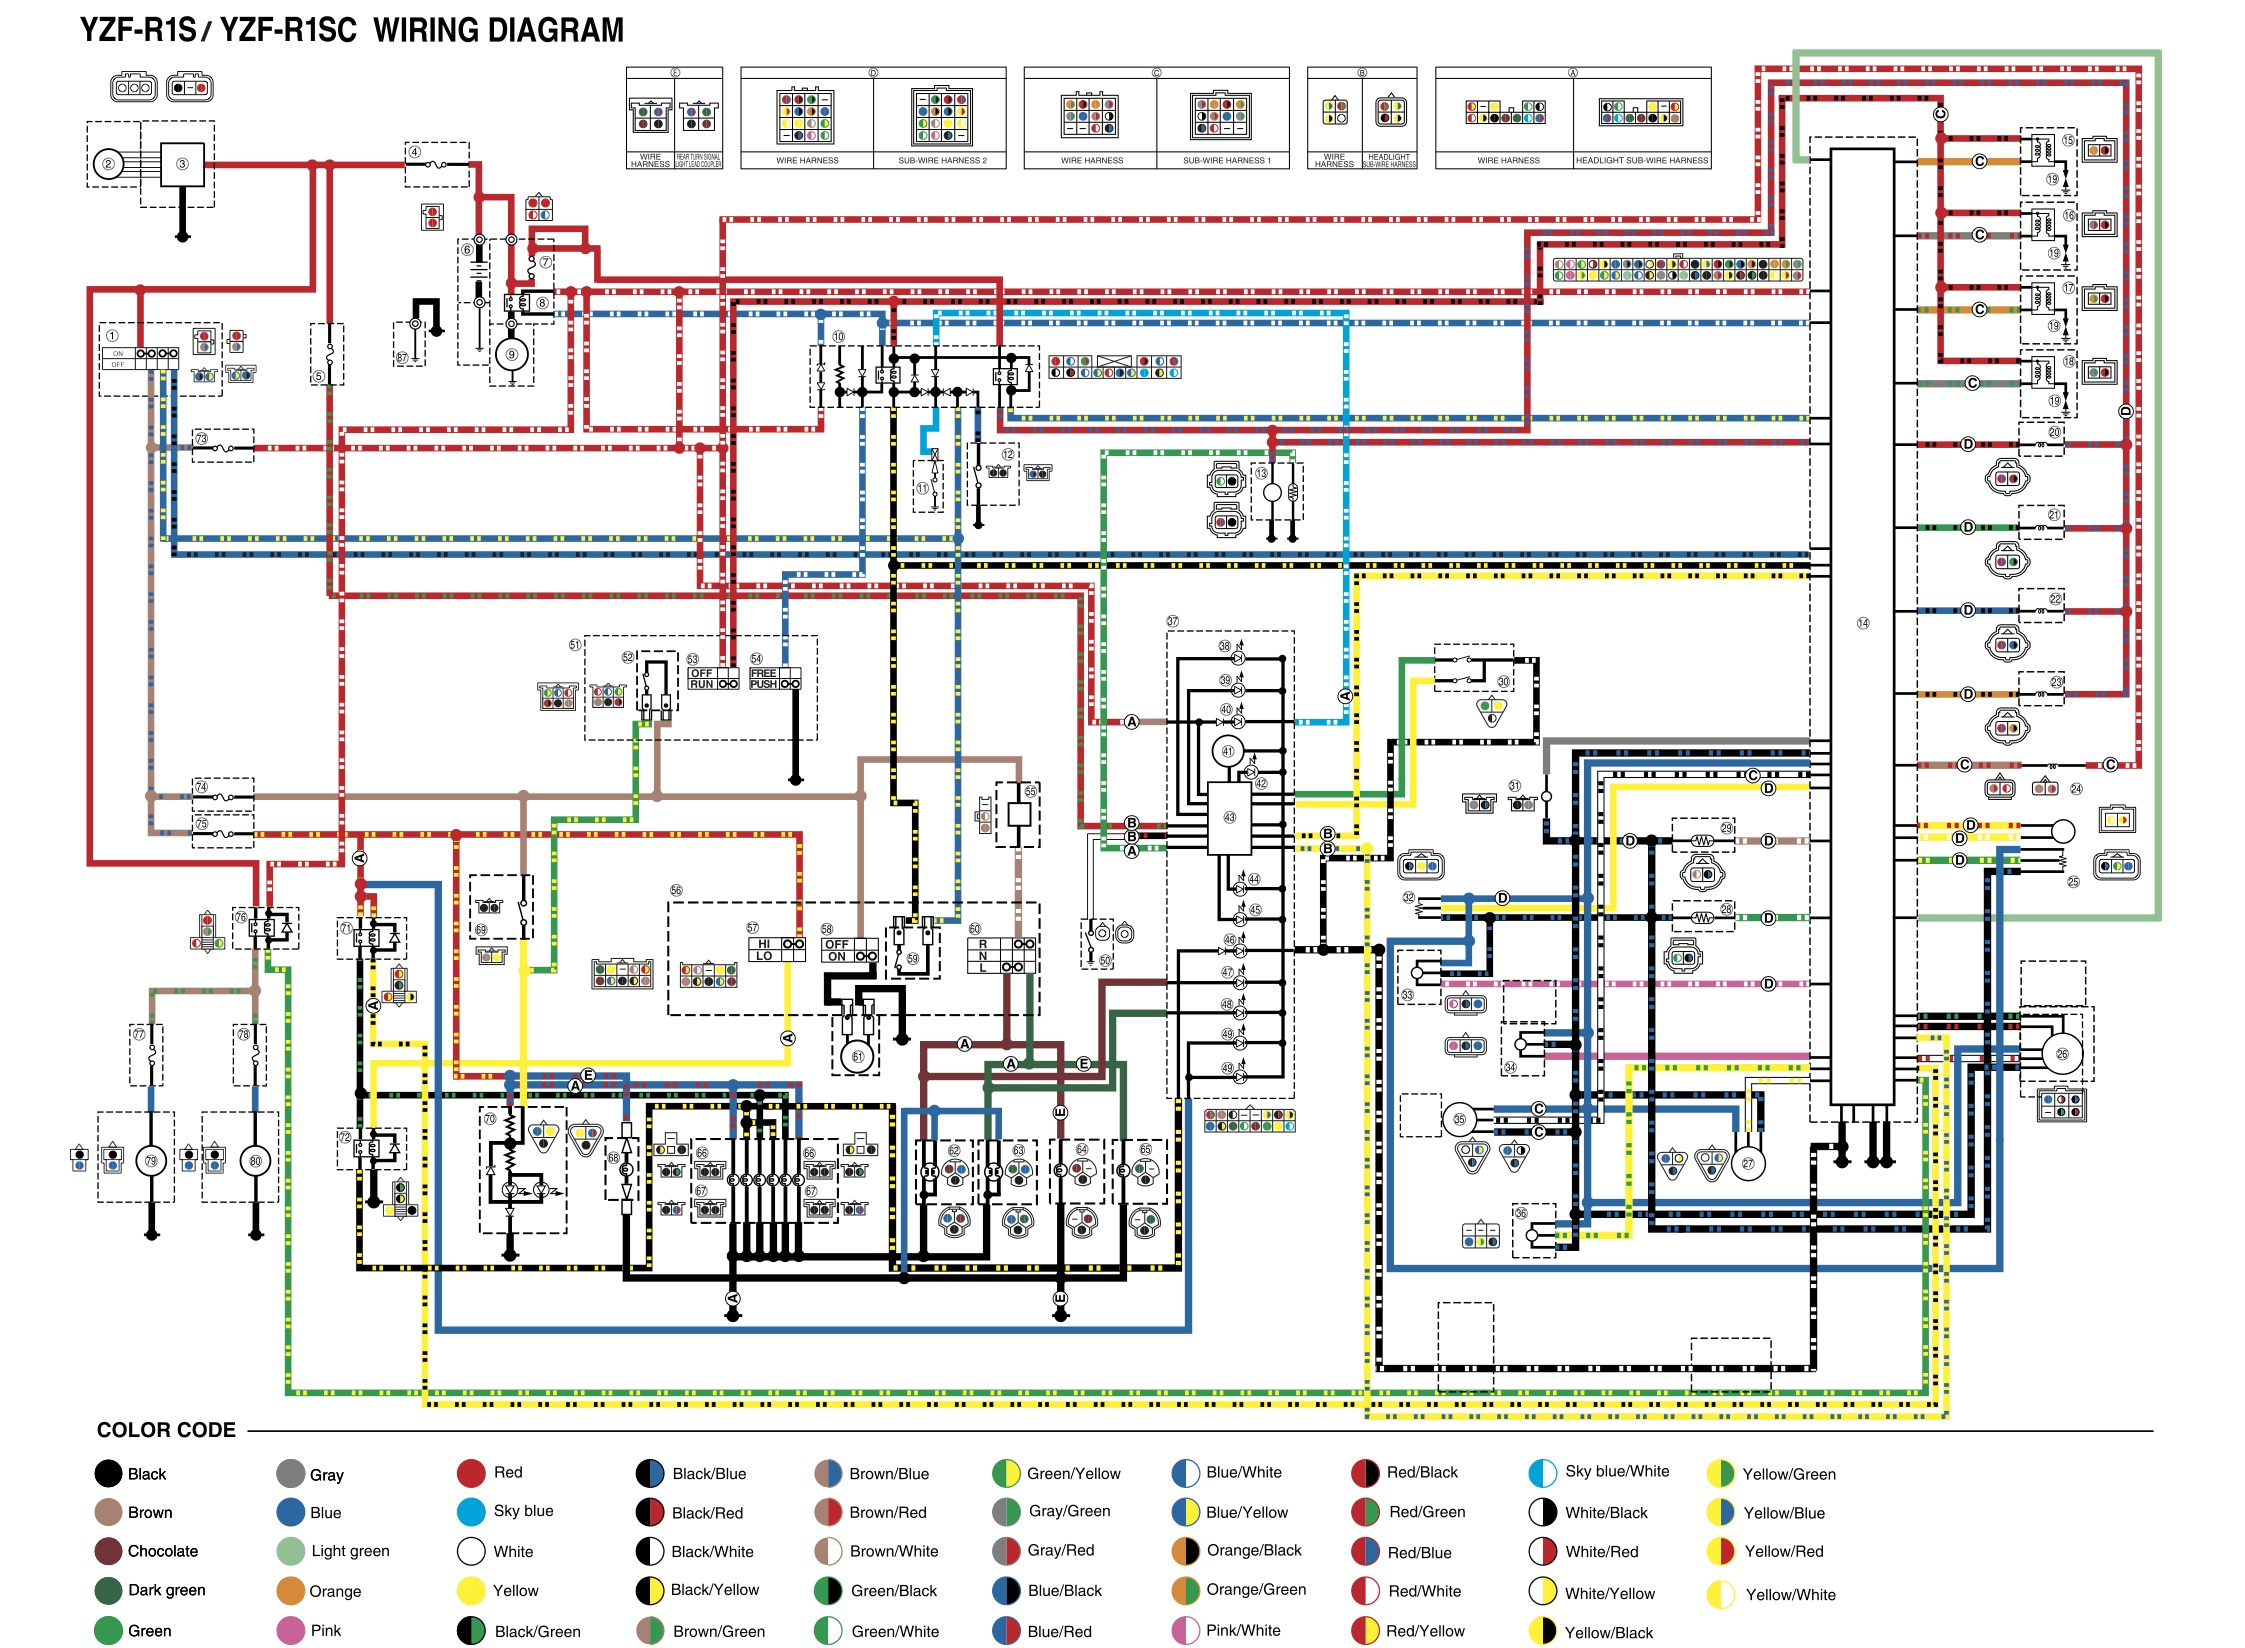 R6s Wiring Diagram Detailed Schematic Diagrams House Plans 05 R6 Rectifier Symbols U2022 Wr250r